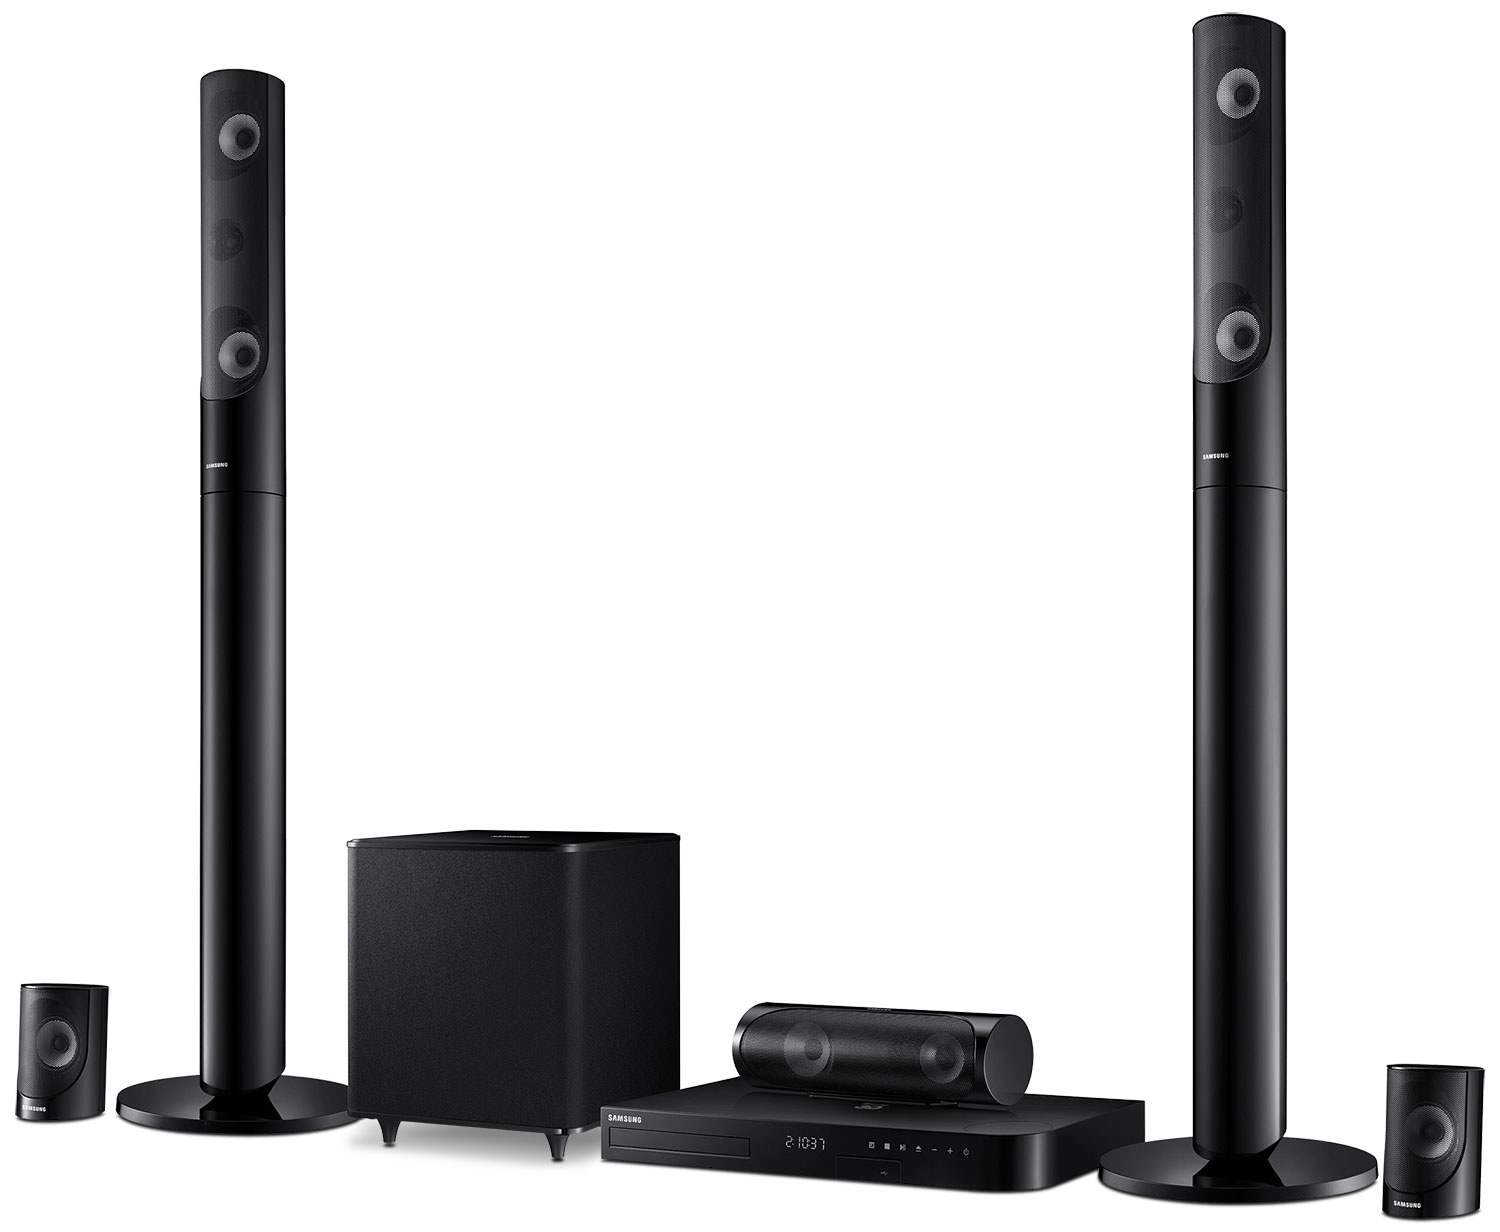 samsung 5 1 channel home theatre system the brick. Black Bedroom Furniture Sets. Home Design Ideas